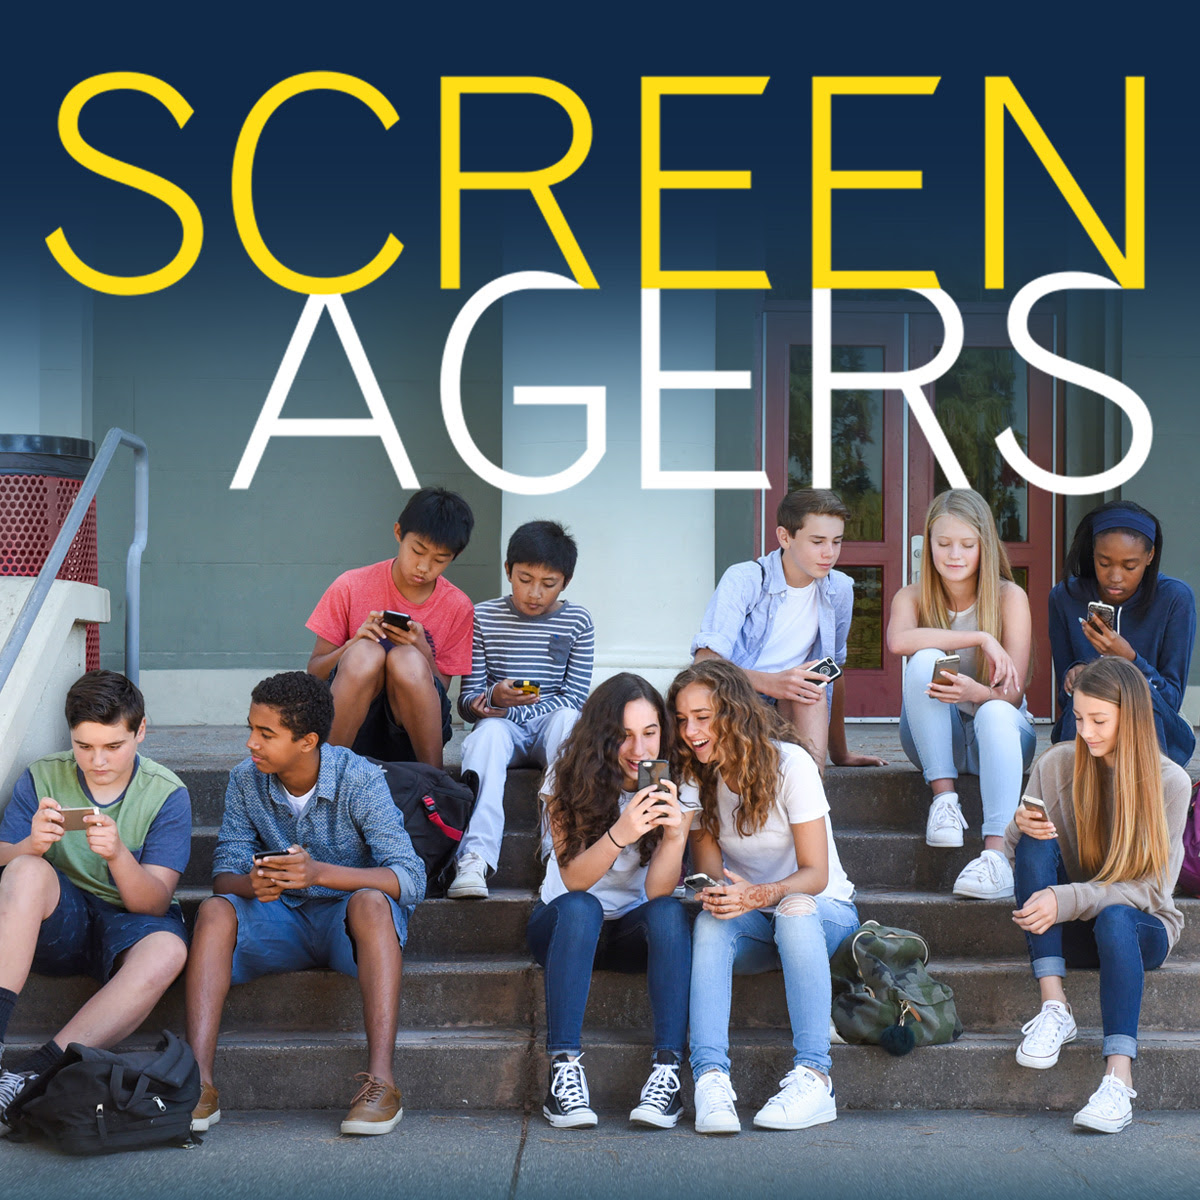 Screenagers Film Presented By Connellsville Area Middle School